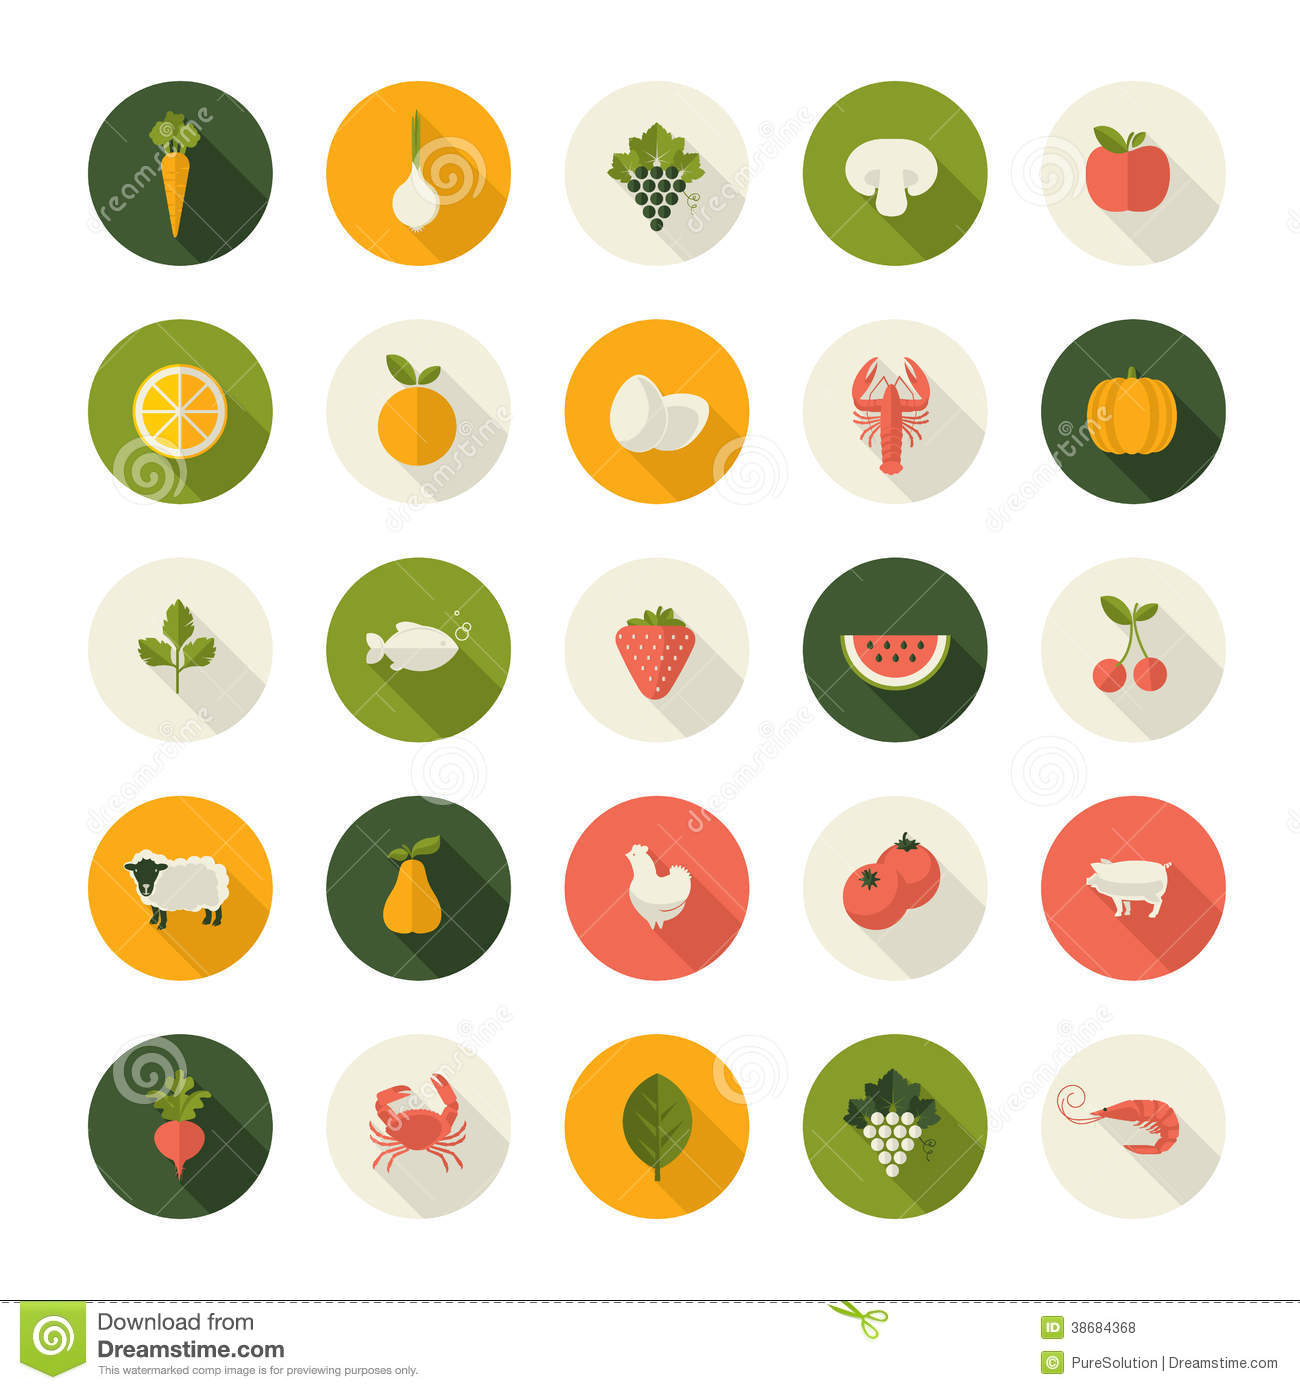 Set Of Flat Design Icons For Food And Drink Royalty Free Stock Photos - Image: 38684368